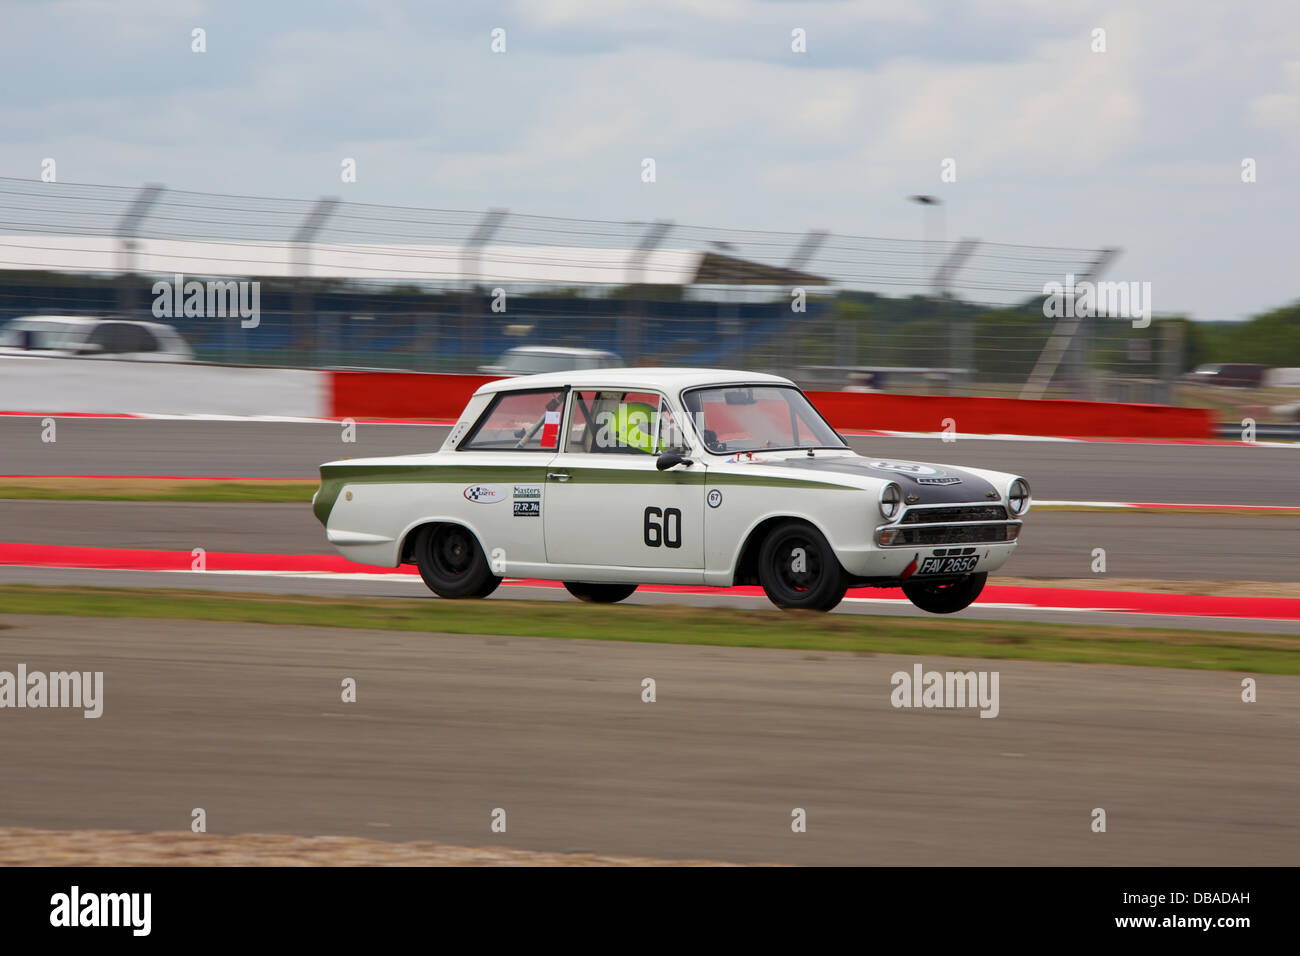 Silverstone, Northants, UK. 26th July, 2013. Silverstone Classic 2013 - Friday Qualifying for Trans-Atlantic Touring Stock Photo